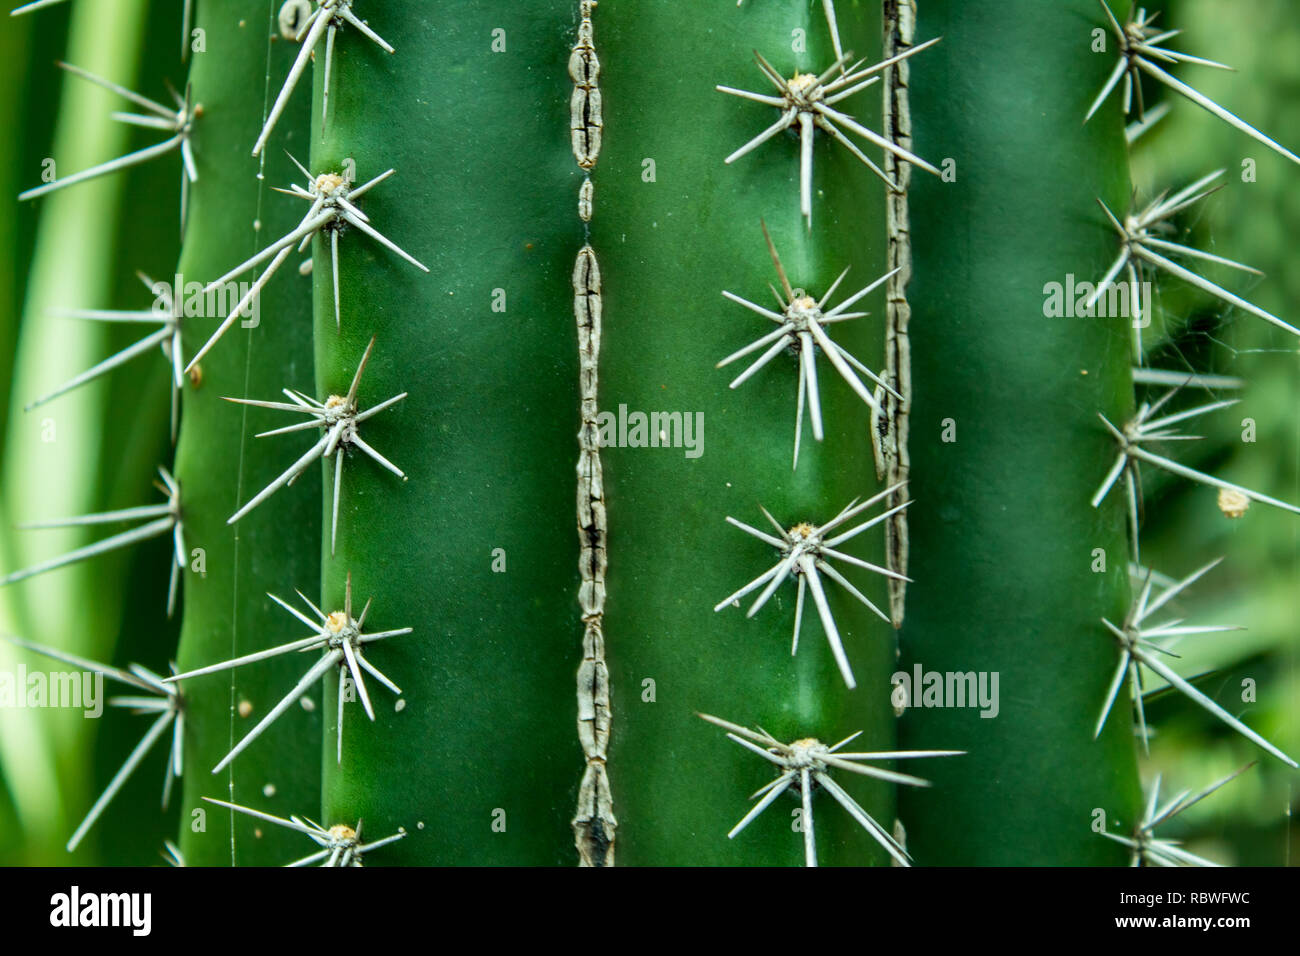 A nice closeup photo of a cactus. Costa Rica - Stock Image